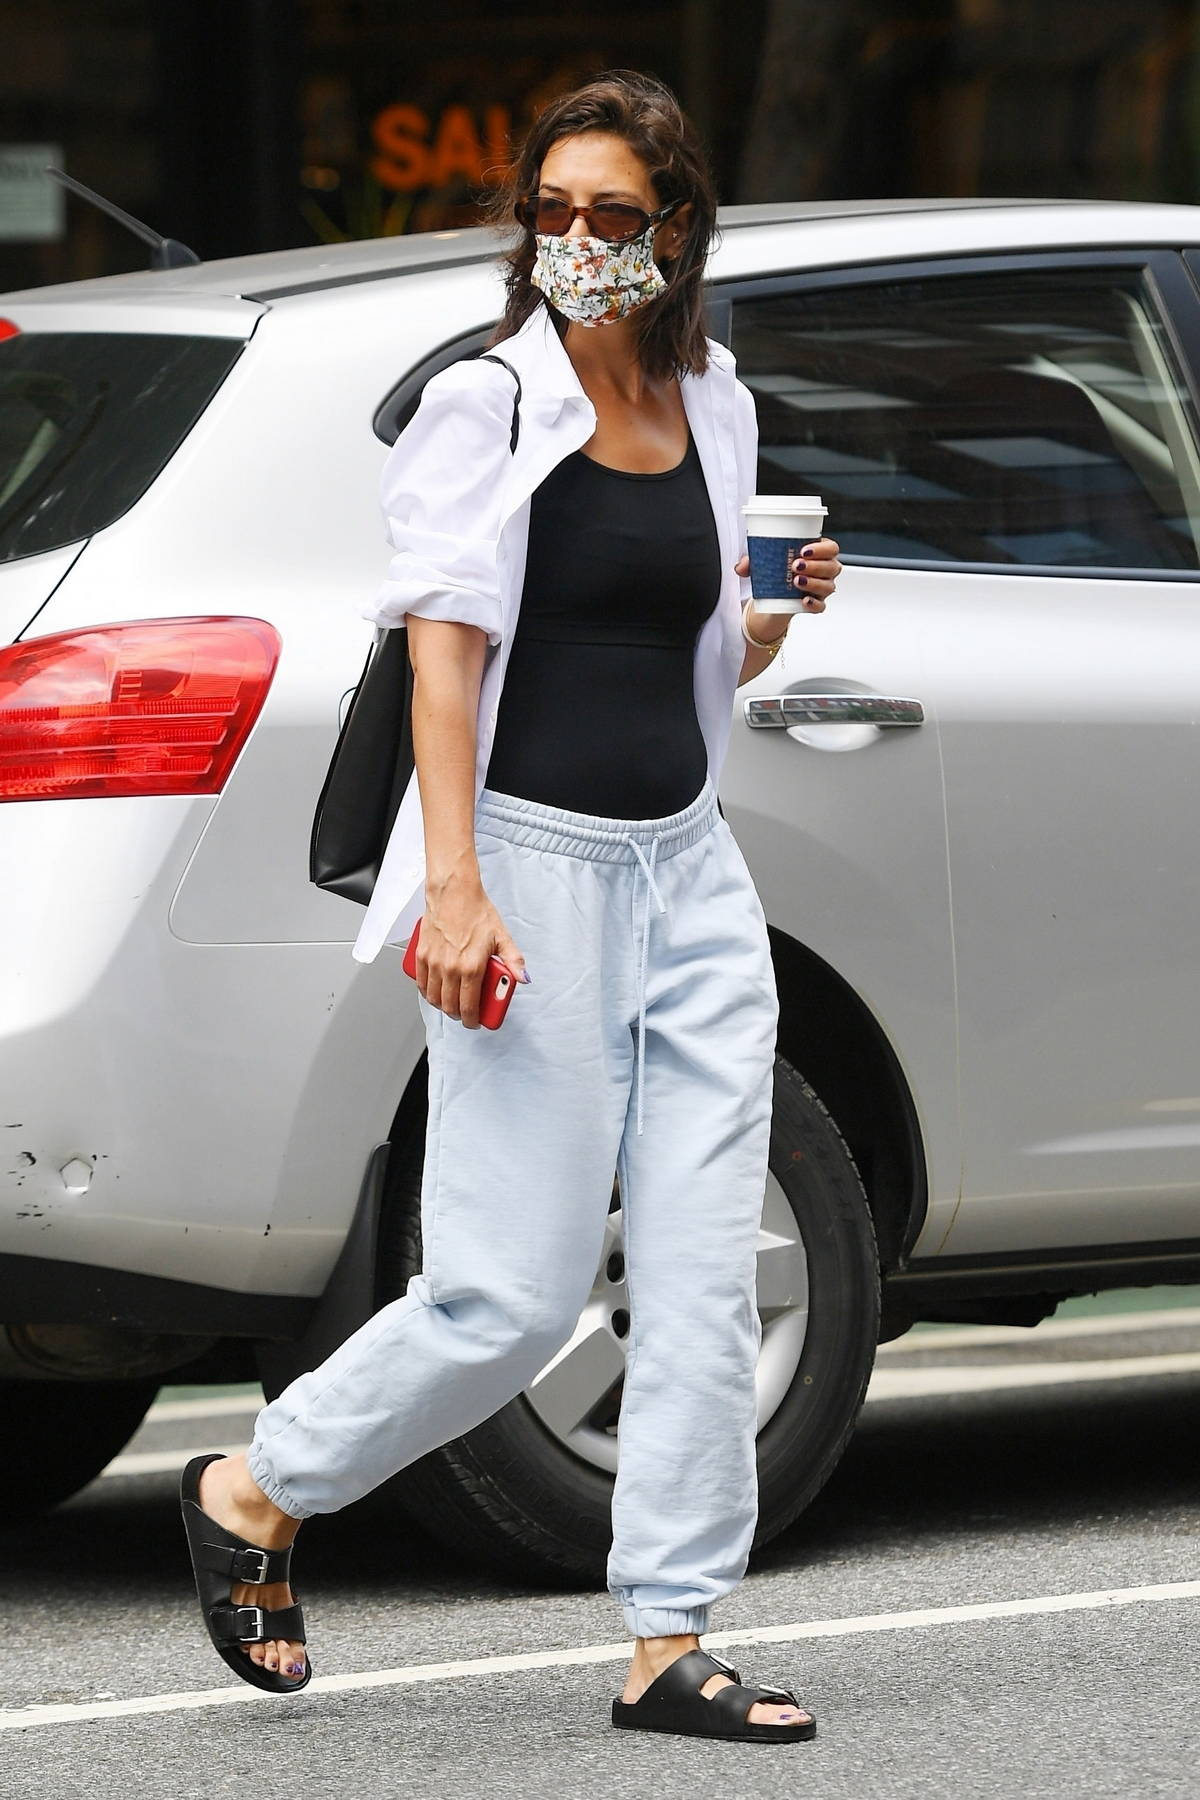 Katie Holmes keeps cozy in sweatpants while out to grab some coffee in SoHo, New York City